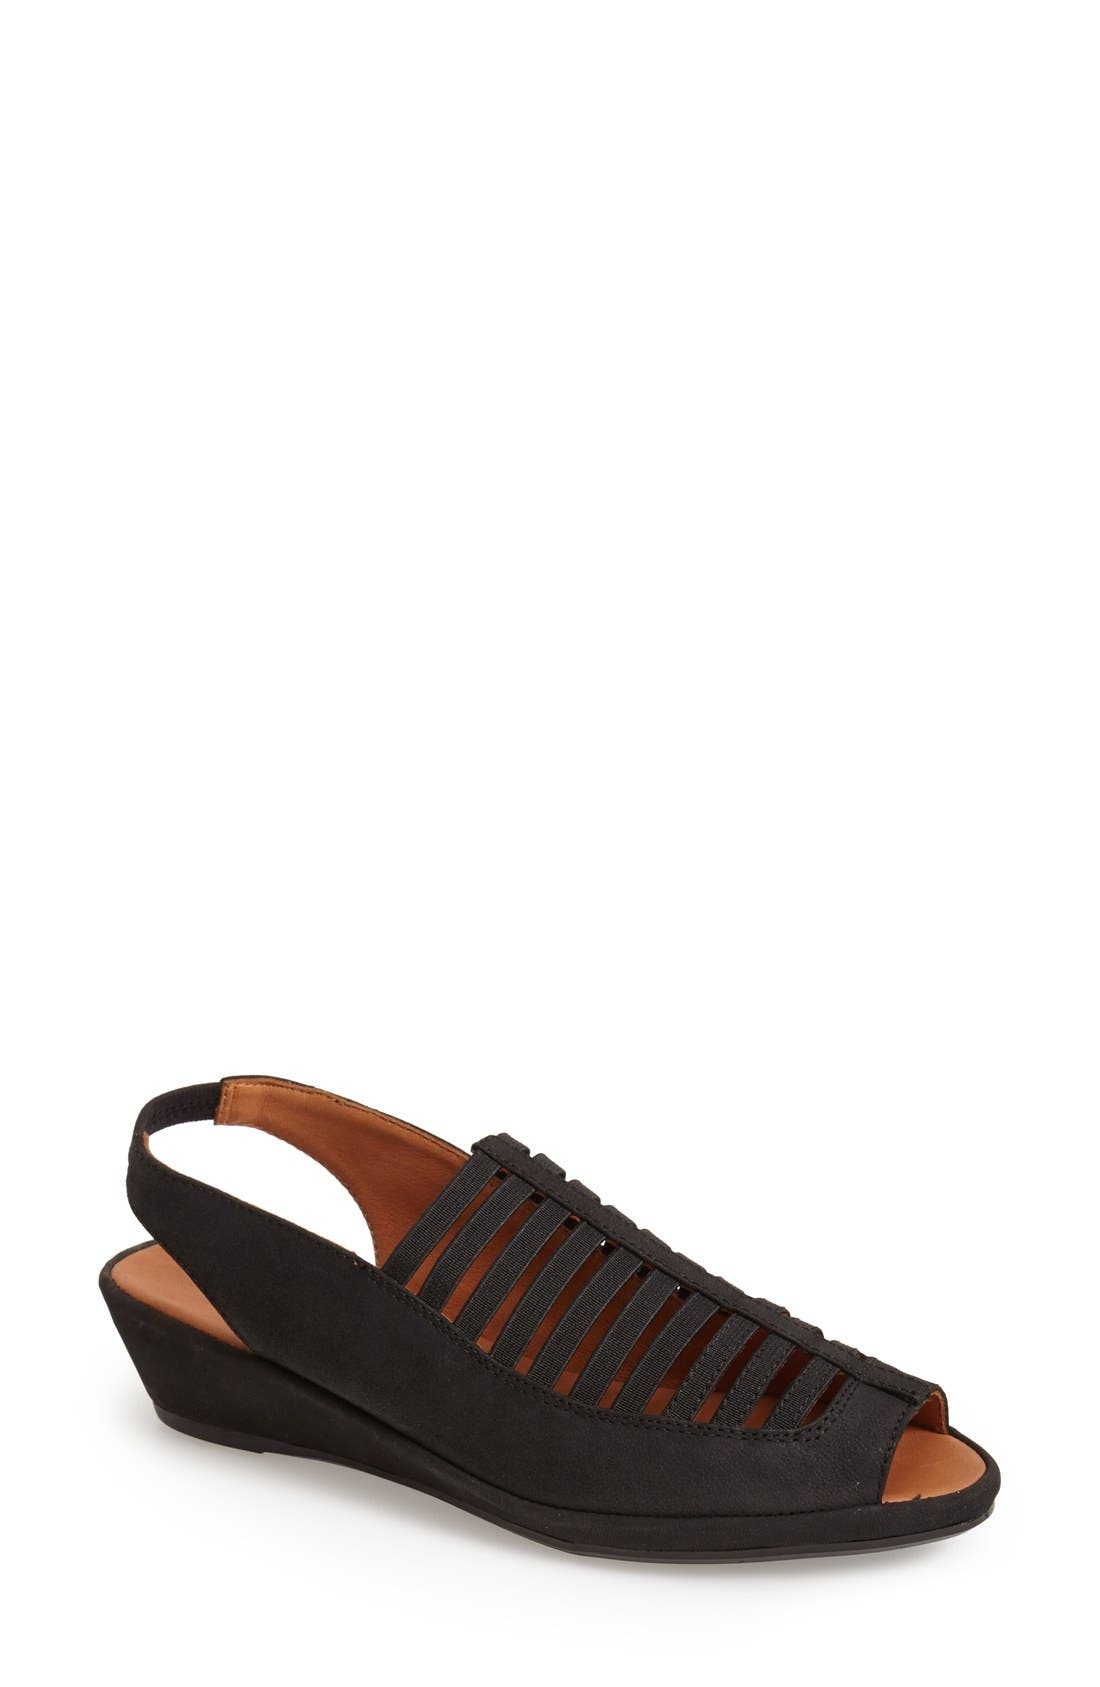 By Kenneth Cole 'Lee' Sandal in Black